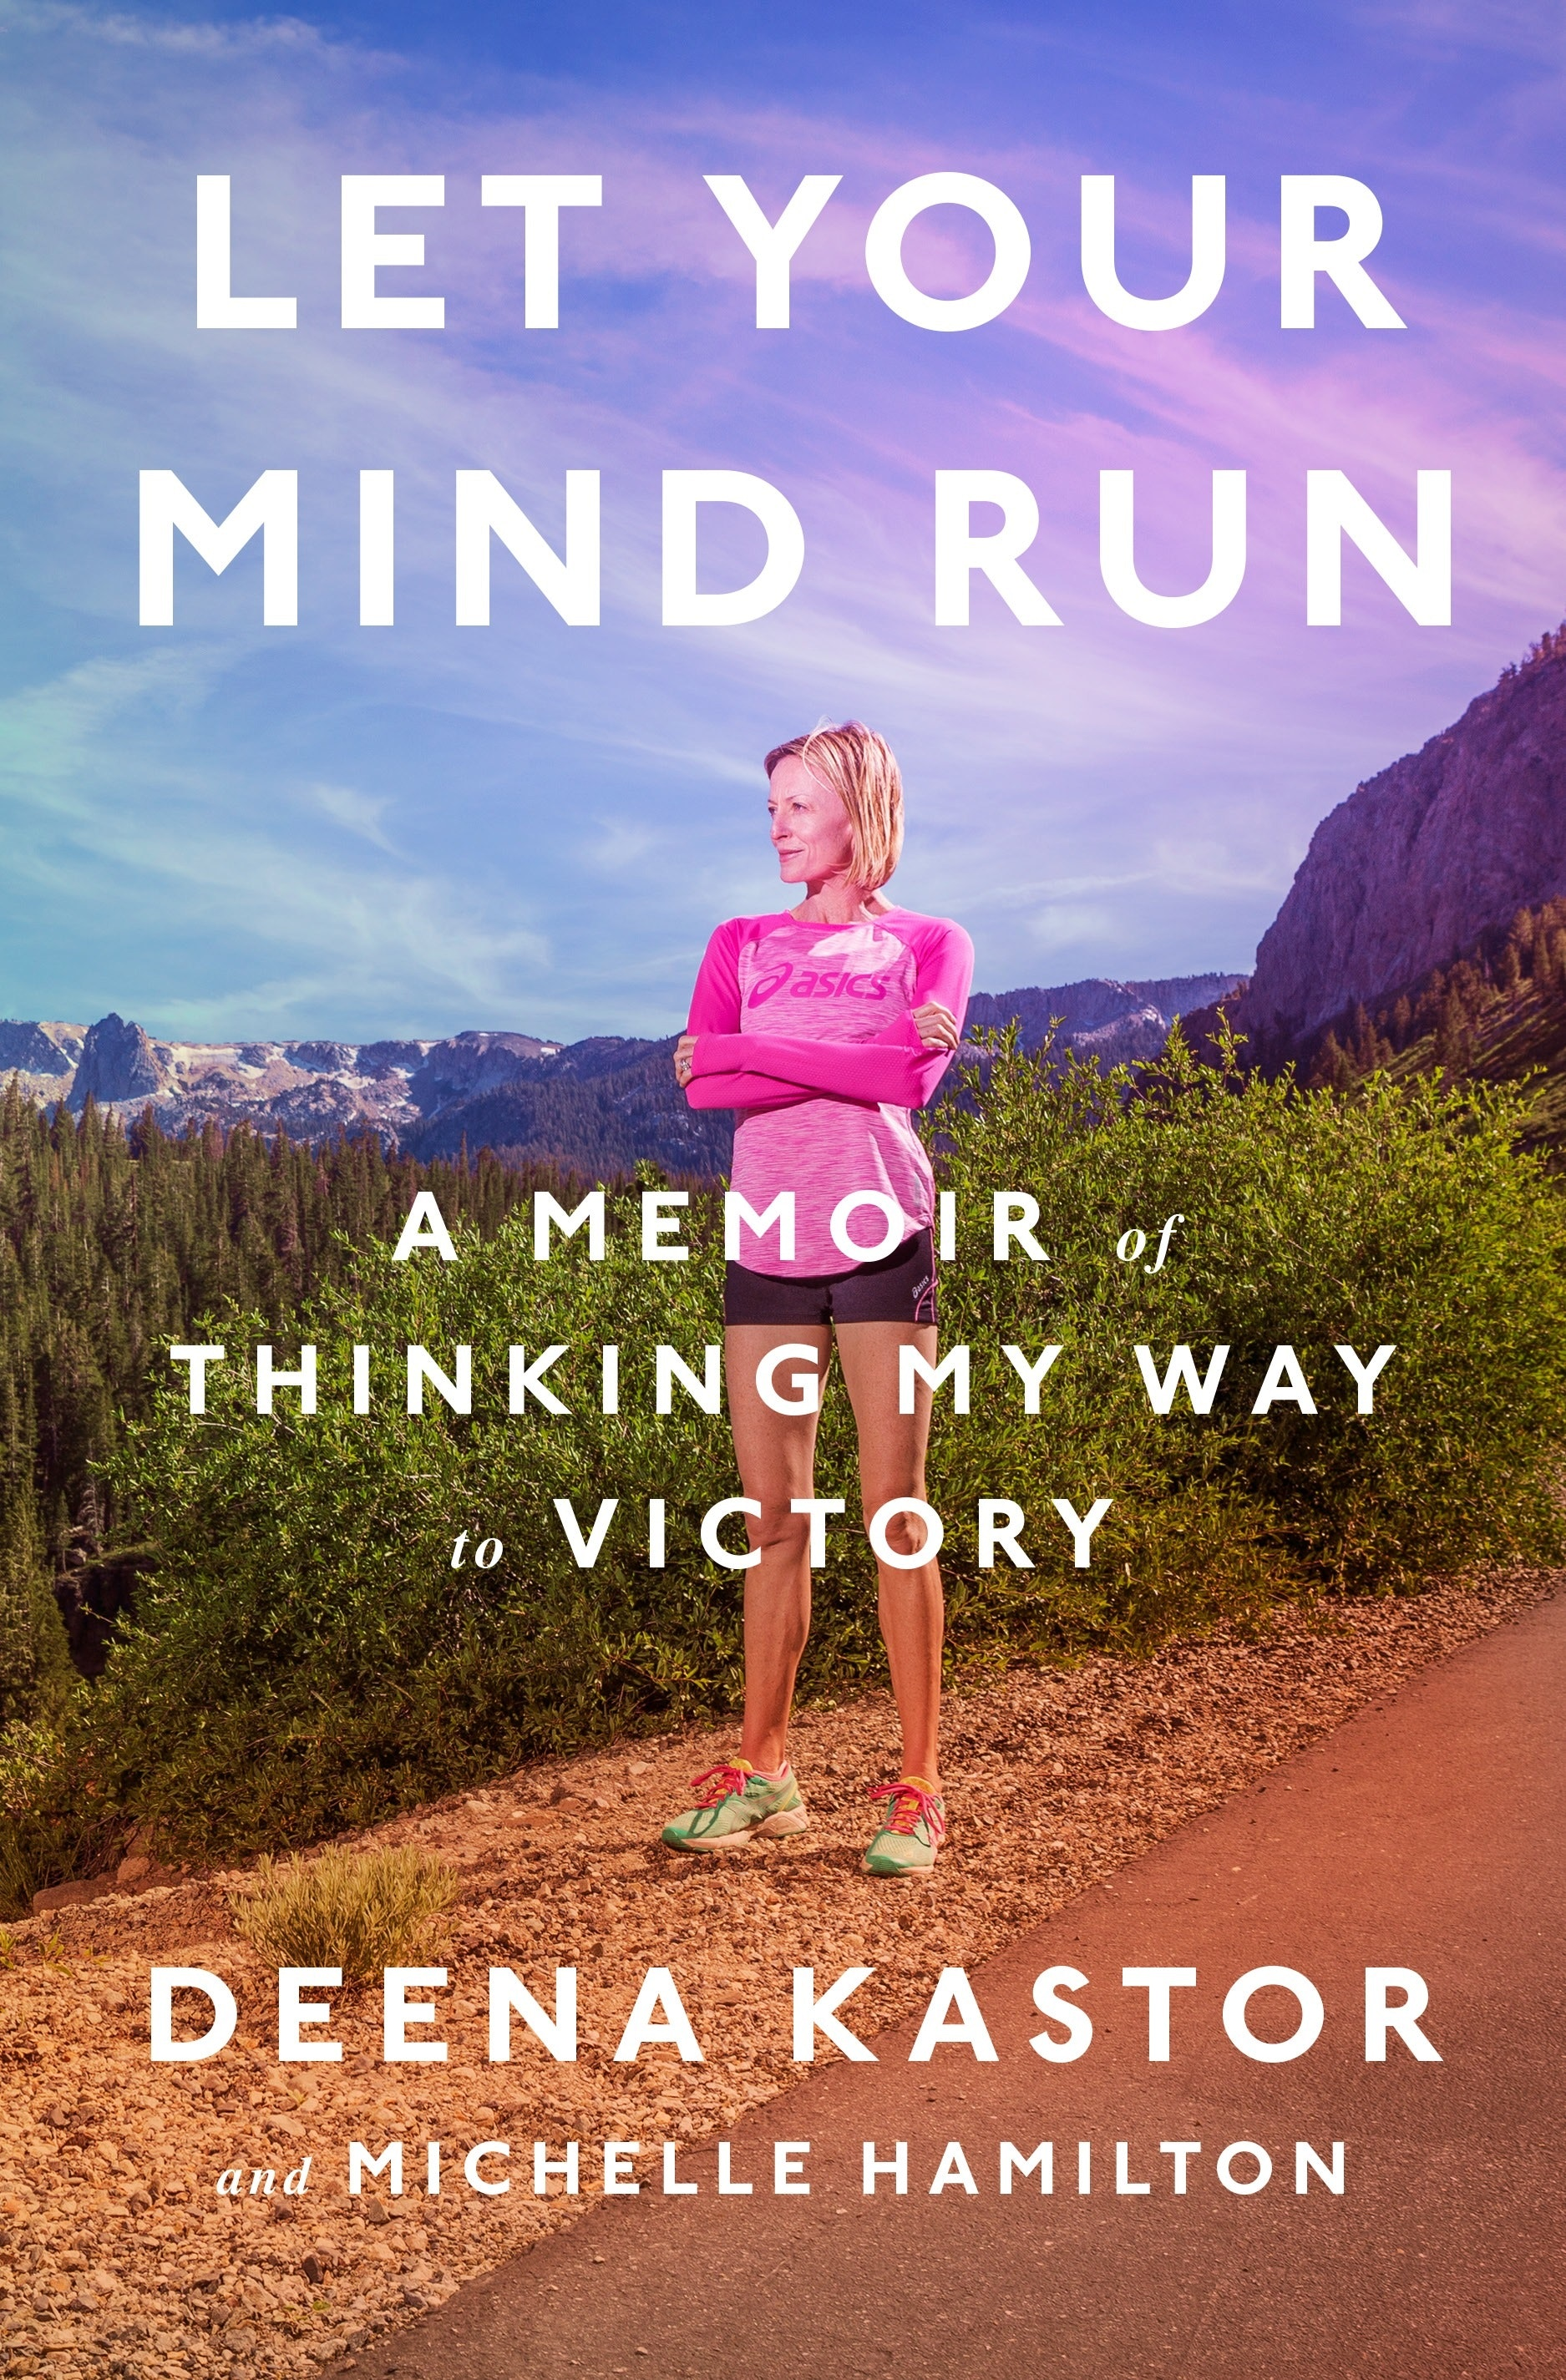 Let Your Mind Run  sweepstakes